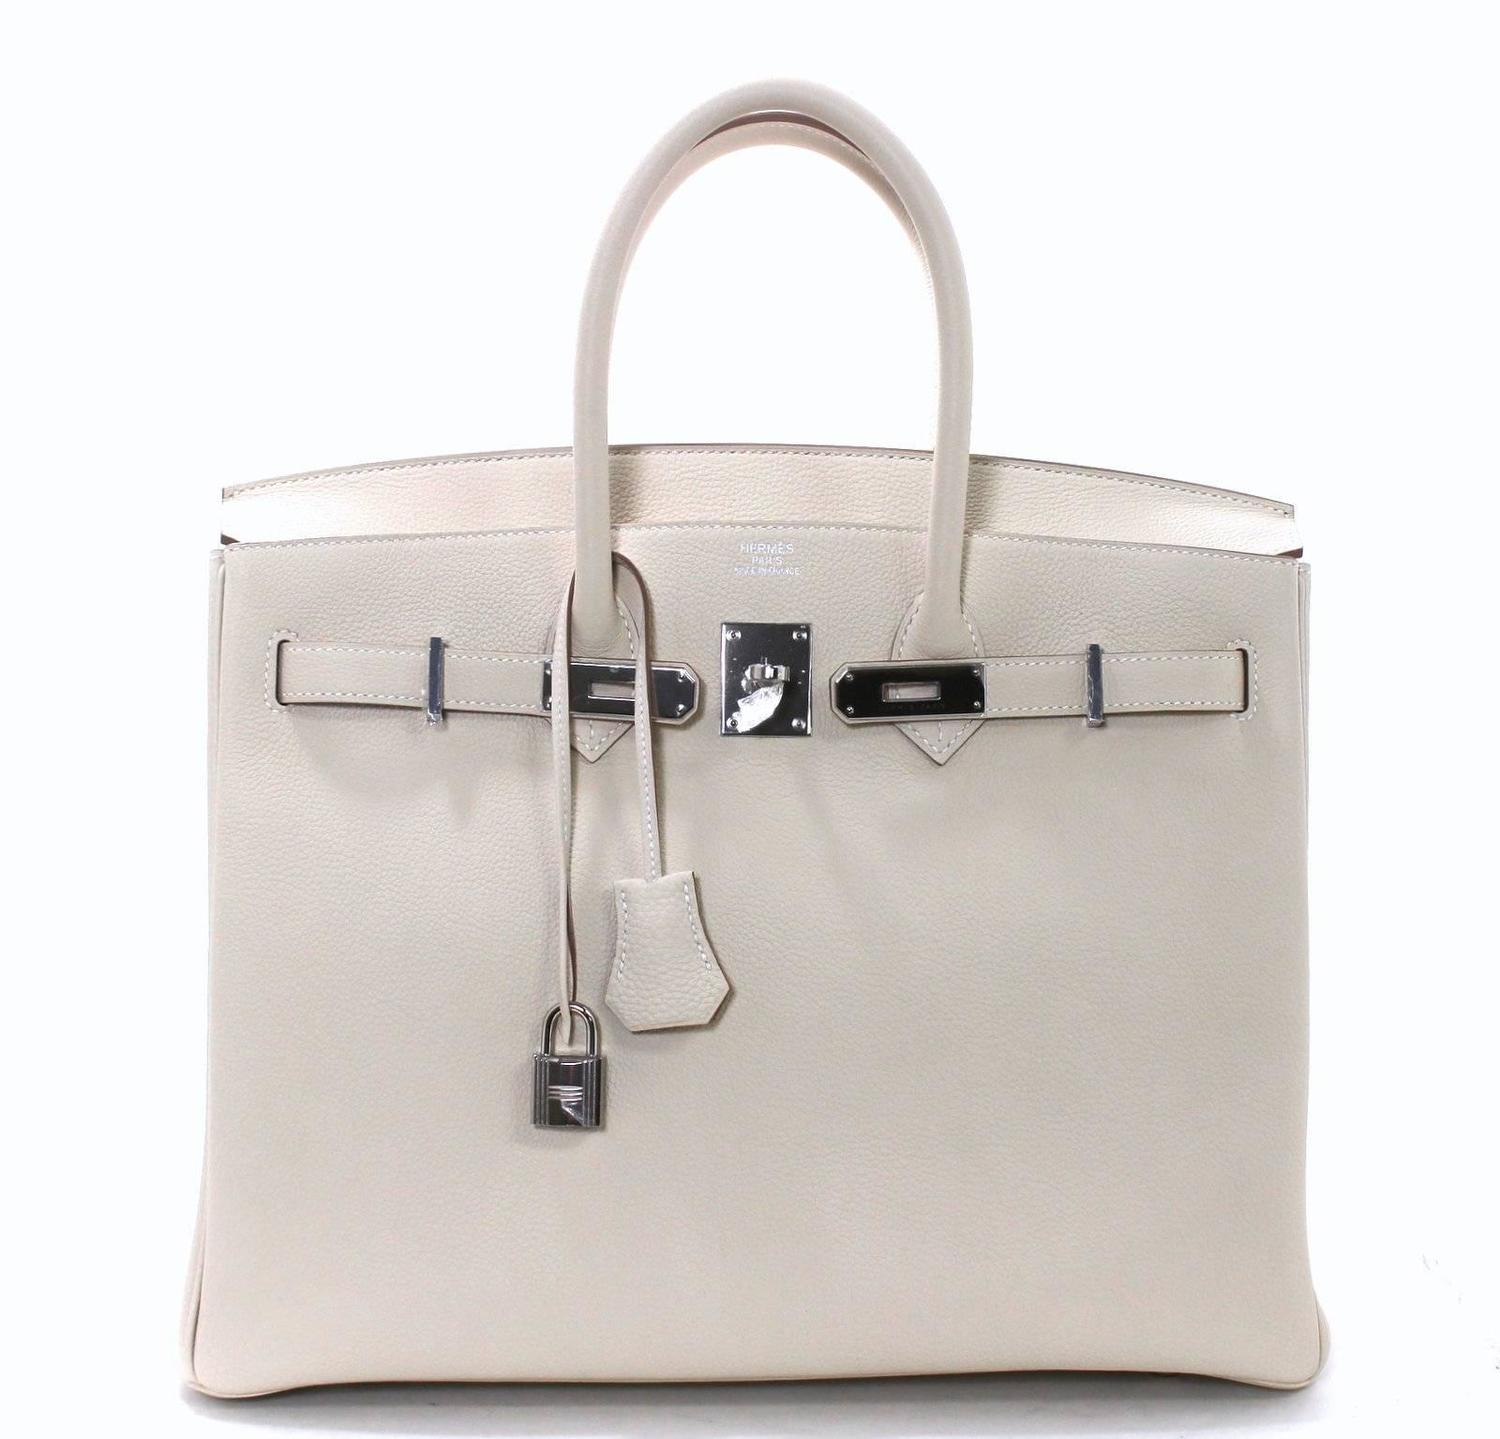 replica hermes evelyne bag - Herm��s Birkin Craie Togo 35 cm with Palladium- Chalk White at 1stdibs